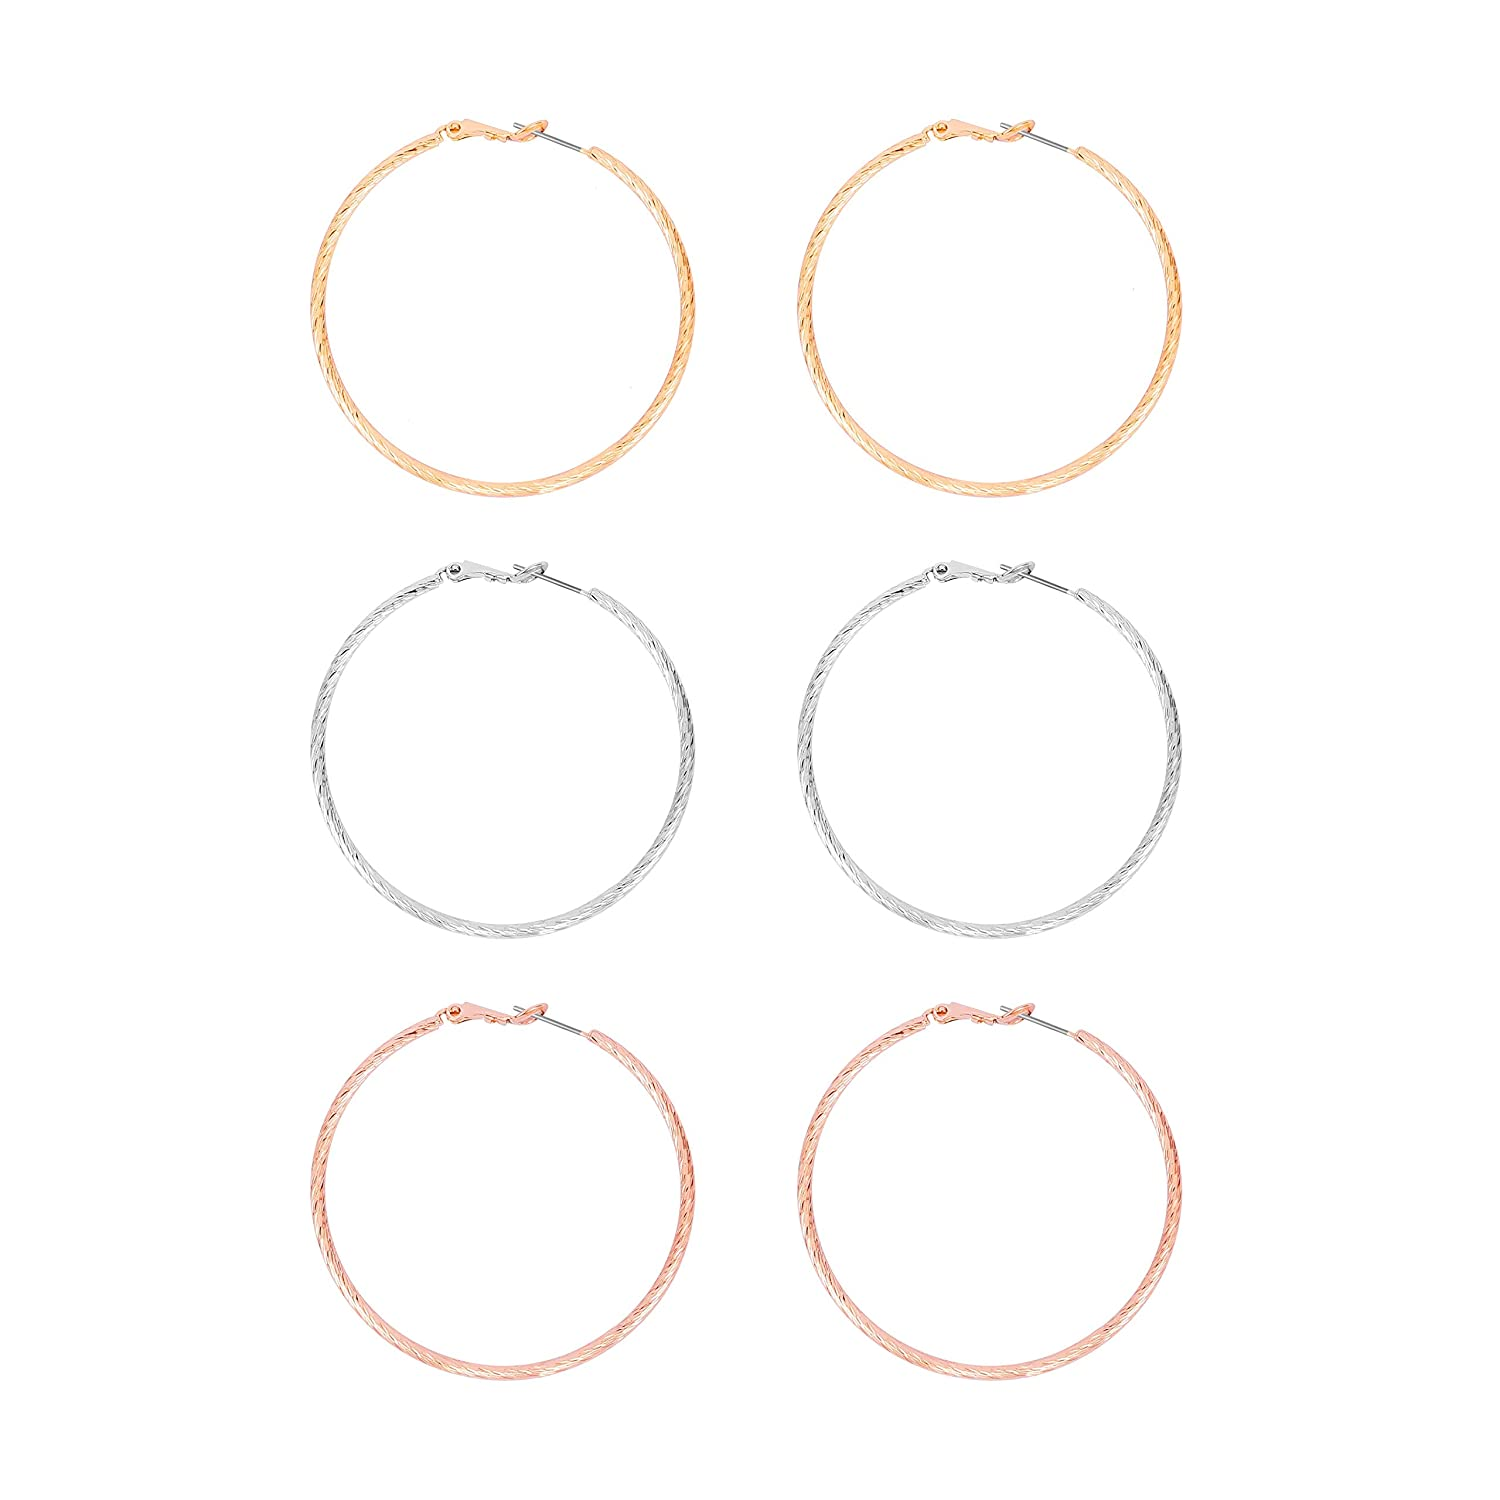 MOOCHI 3 Pairs Big Twisted Hoop Circle Earrings Gold Plated Copper Rose Gold Platedr Silver Plated Hoop Earrings for Women Girls Sensitive Ears